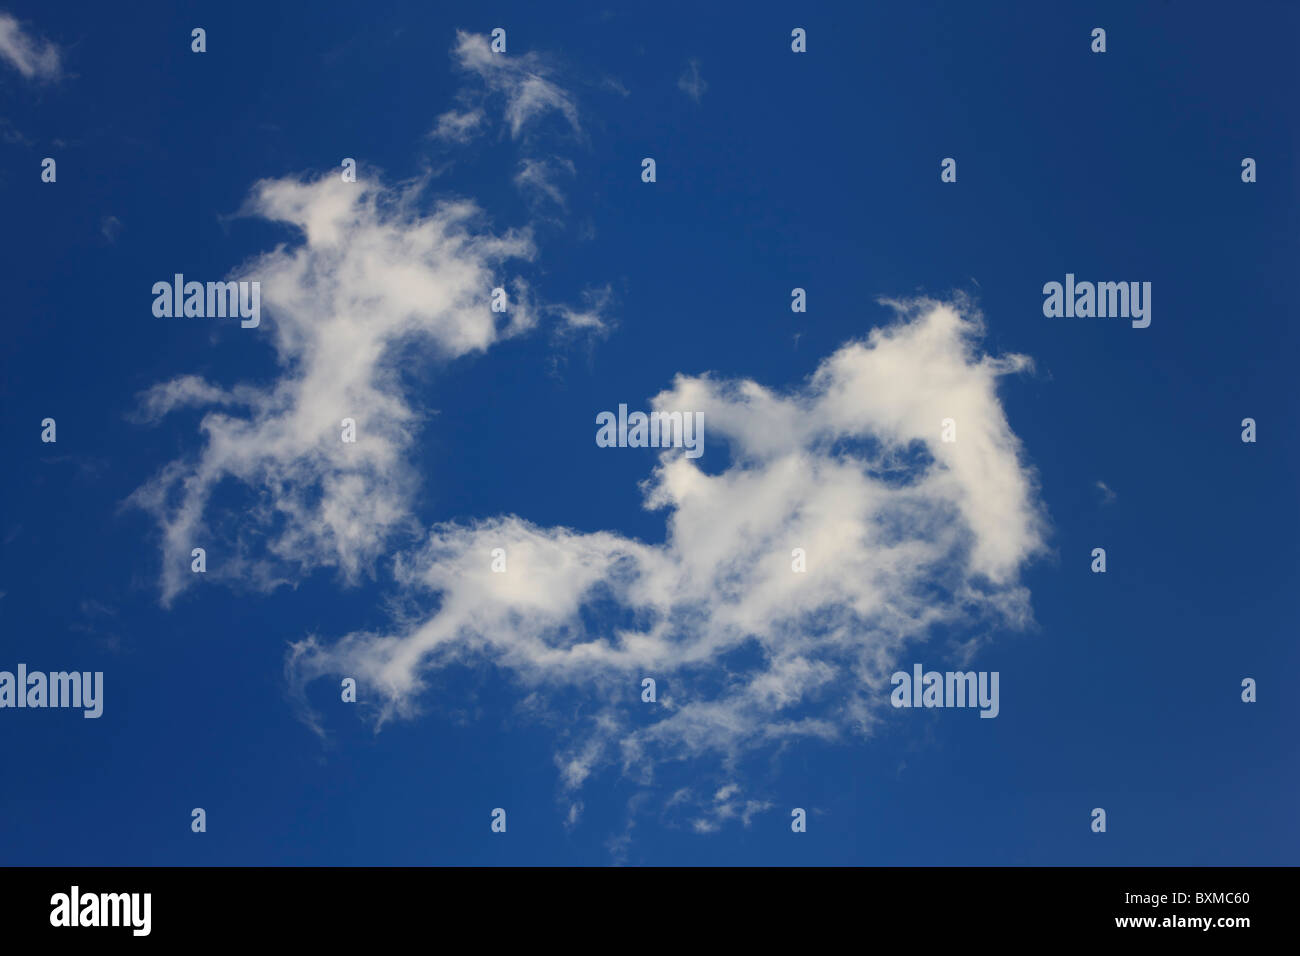 Some wispy clouds that are dissipating overhead. - Stock Image